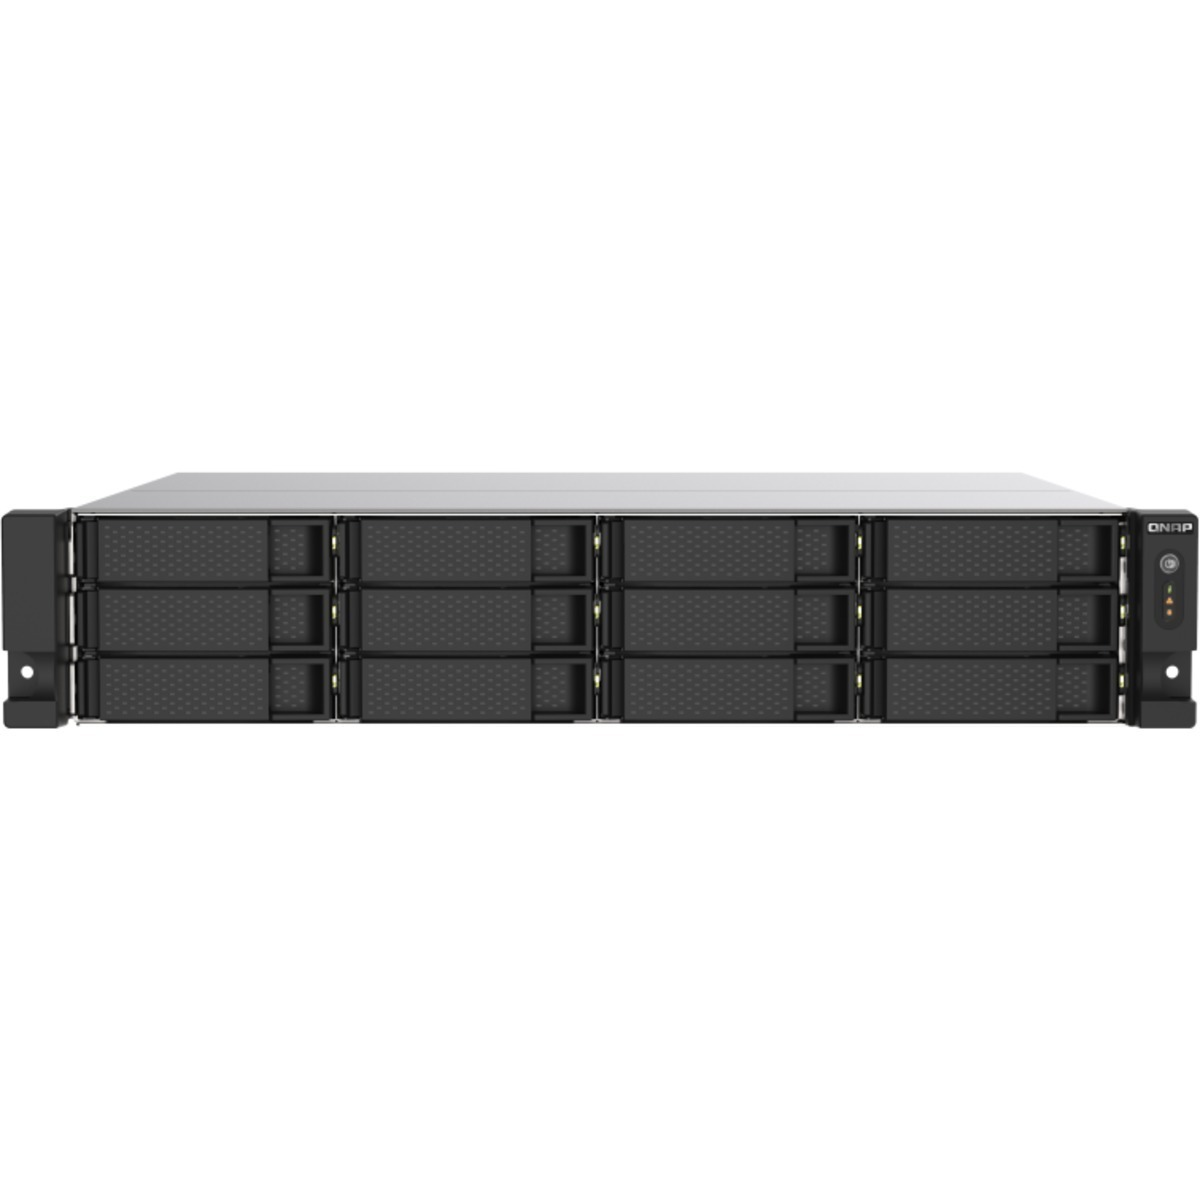 buy $4300 QNAP TS-1273AU-RP 72tb RackMount NAS - Network Attached Storage Device 12x6000gb Seagate BarraCuda ST6000DM003 3.5 5400rpm SATA 6Gb/s HDD CONSUMER Class Drives Installed - Burn-In Tested - ON SALE - FREE RAM UPGRADE - nas headquarters buy network attached storage server device das new raid-5 free shipping usa holiday new year clearance sale TS-1273AU-RP